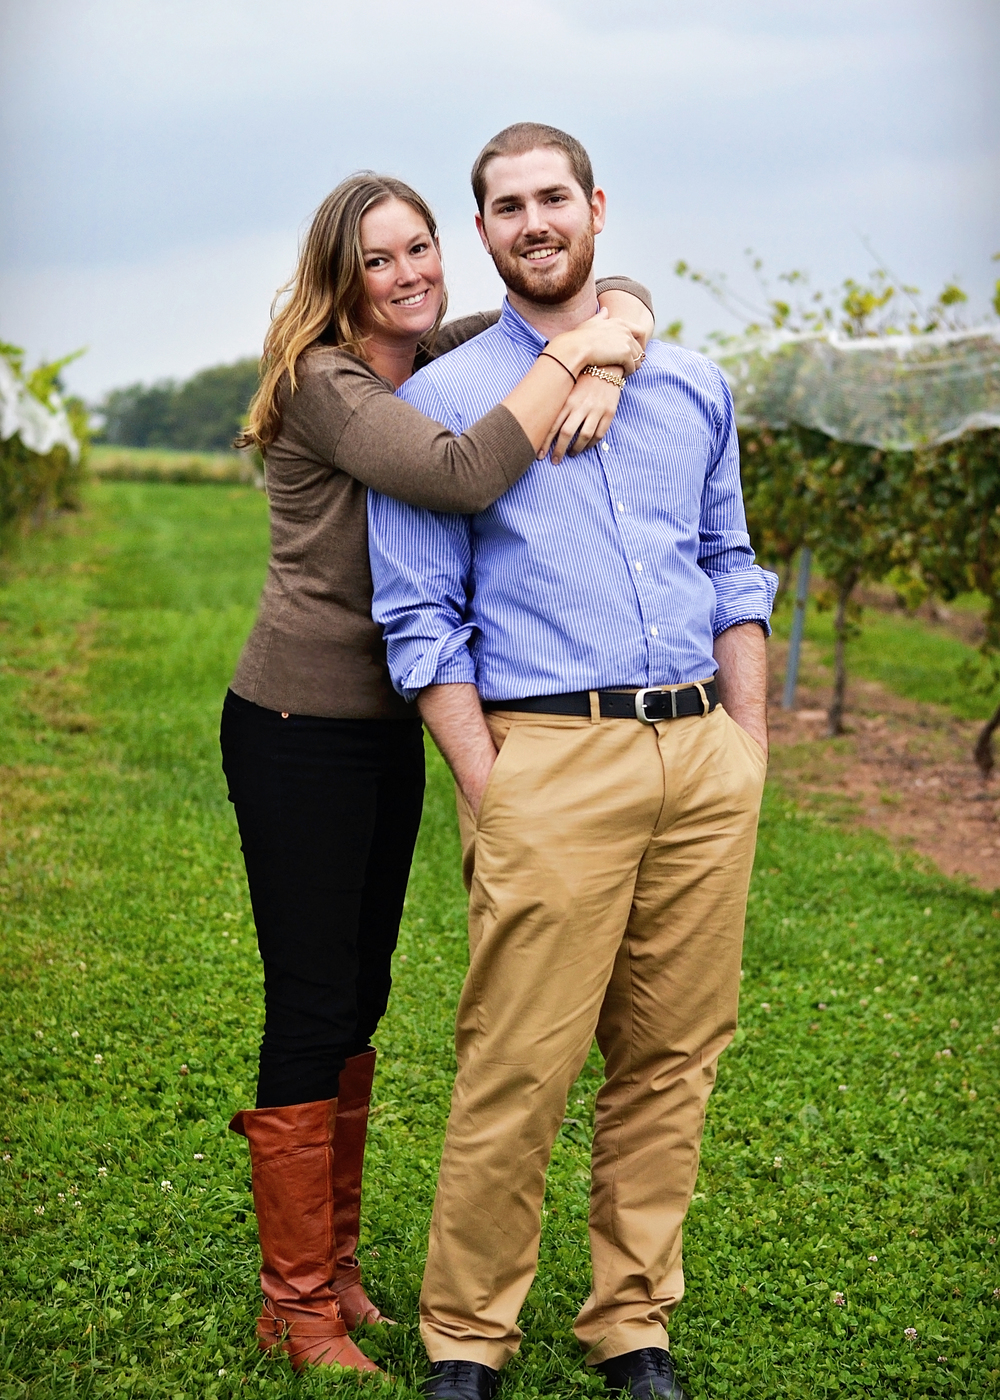 """Testimonial from Marisa M    """"Sam I love the pictures! Everyone keeps asking us if we are engaged. You really did a great job with all the different shots. Any couple who needed engagement shots should have you take them for sure!"""""""